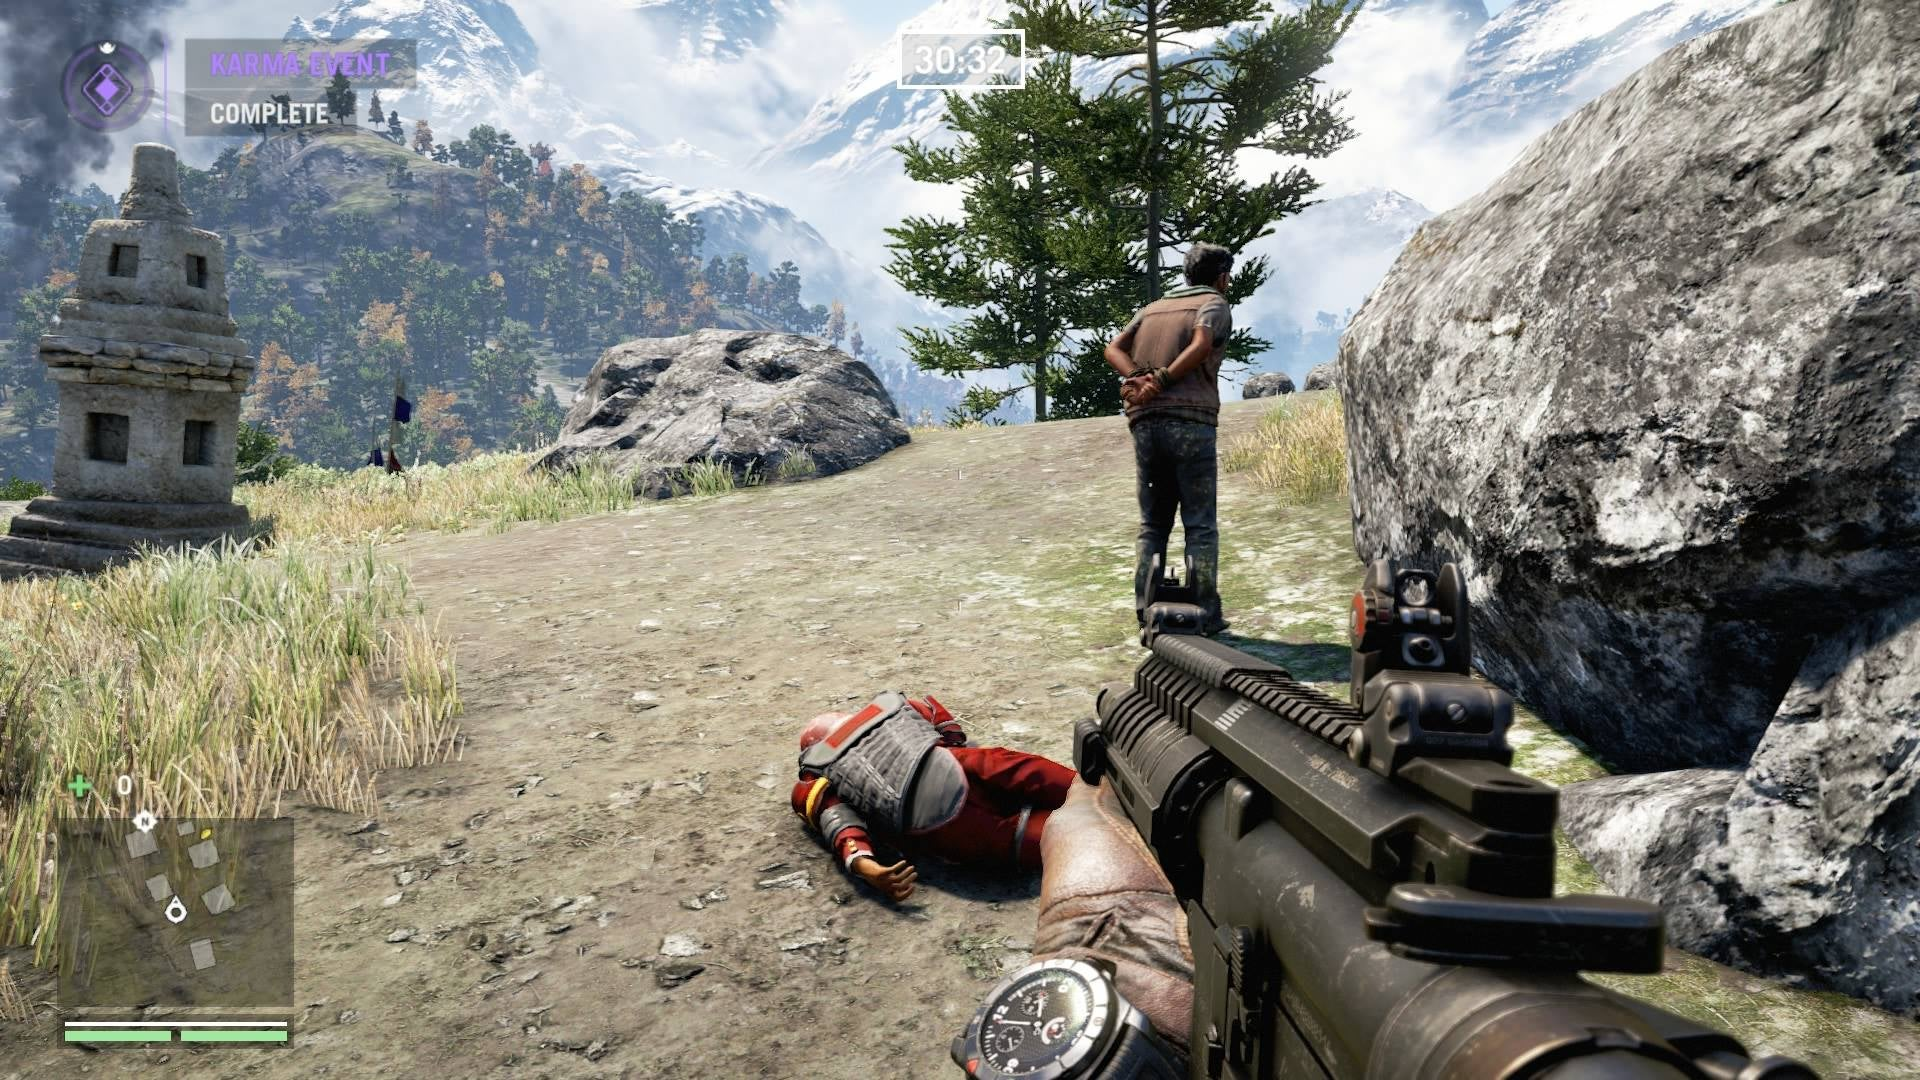 Far cry 4 all dlc ps3 - a